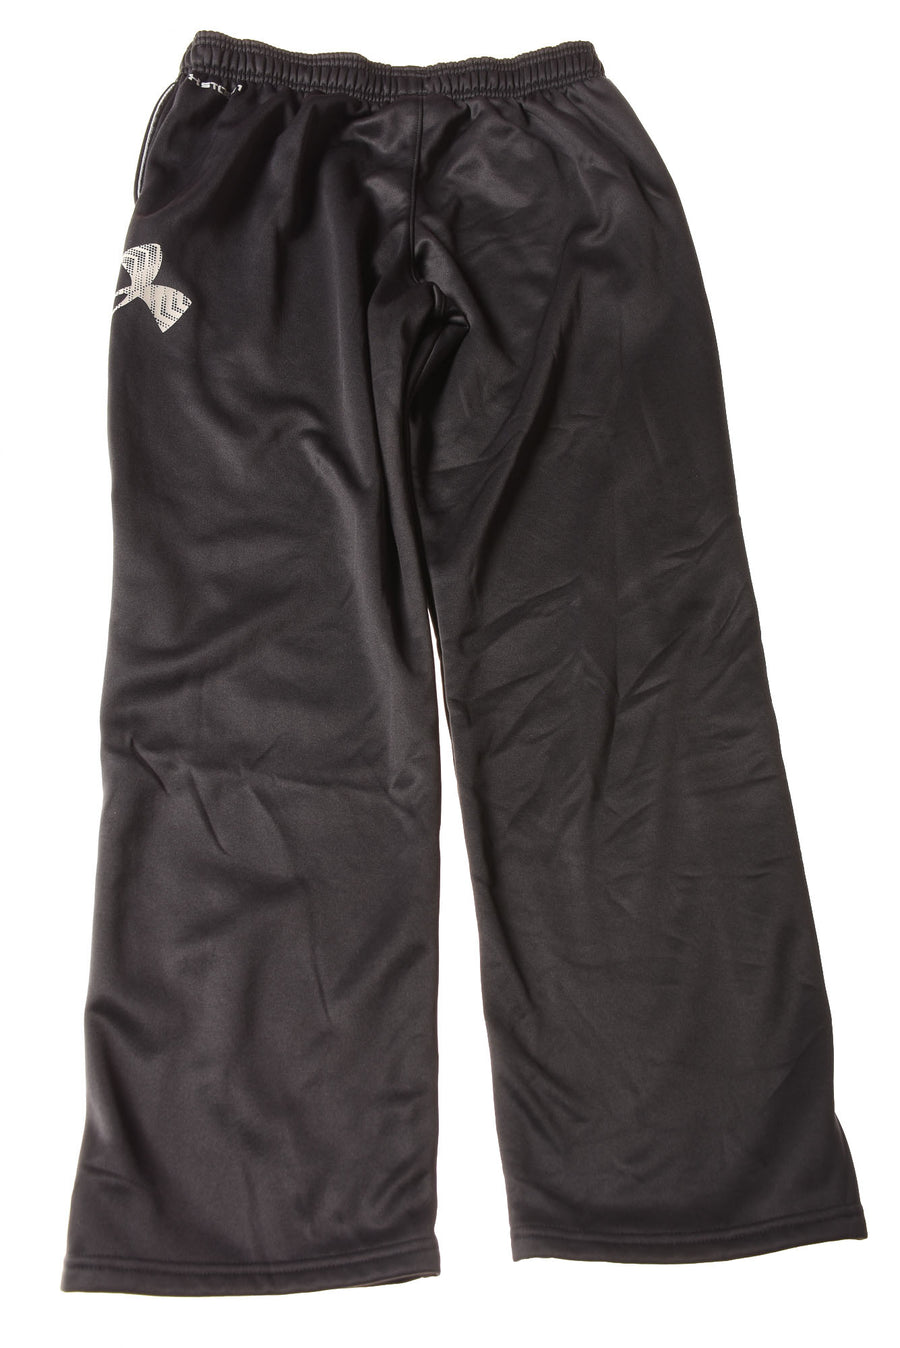 Boy's Pants By Under Armour